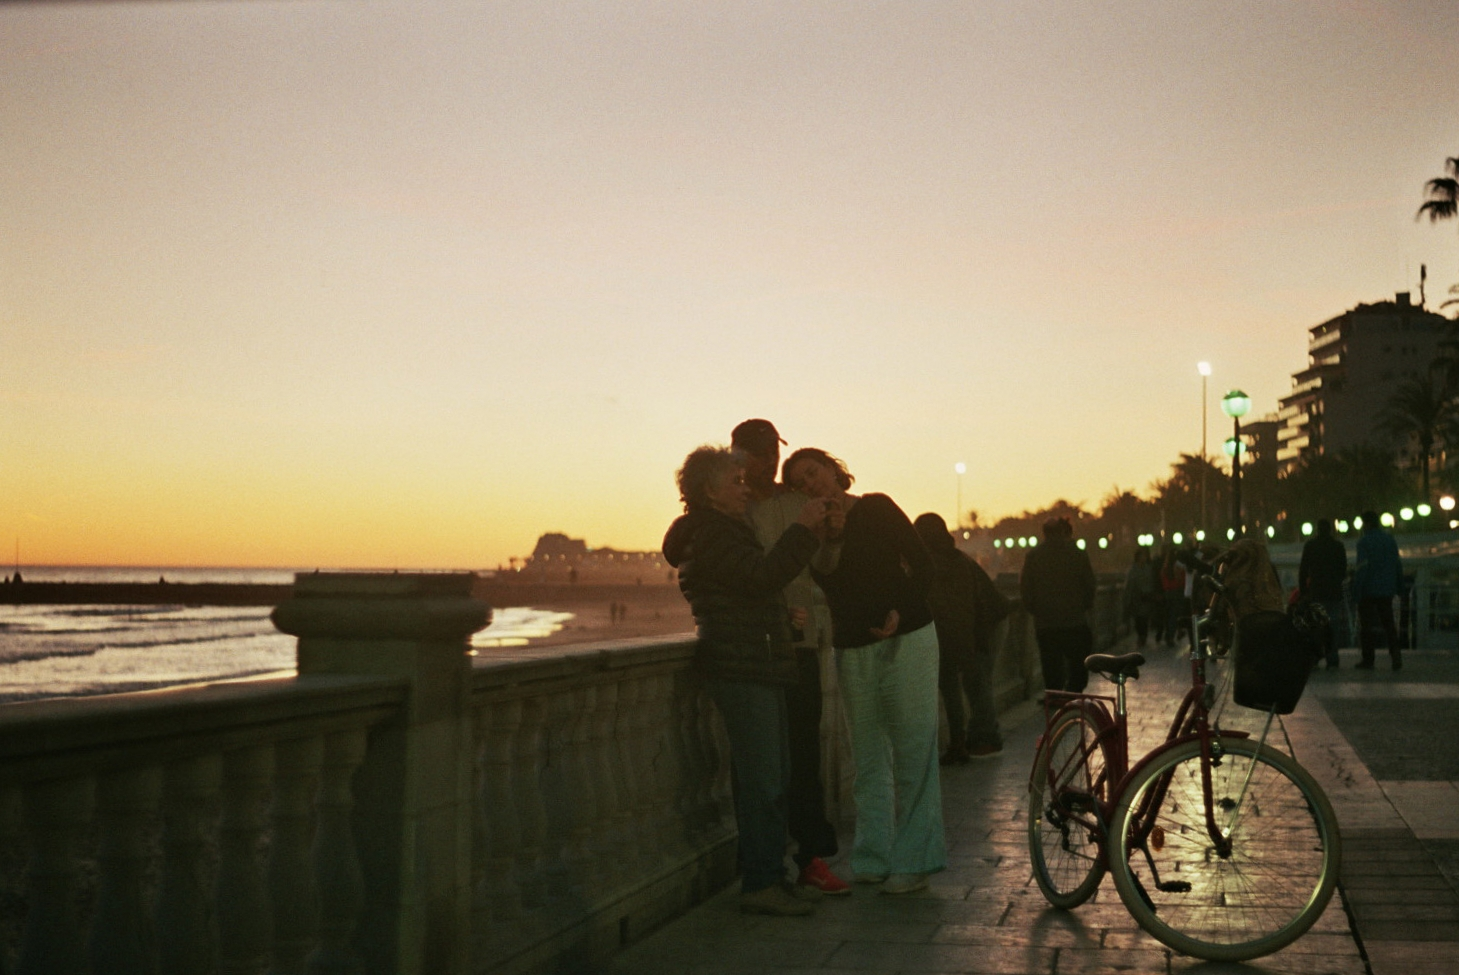 A family enjoying the sunset in Sitges.